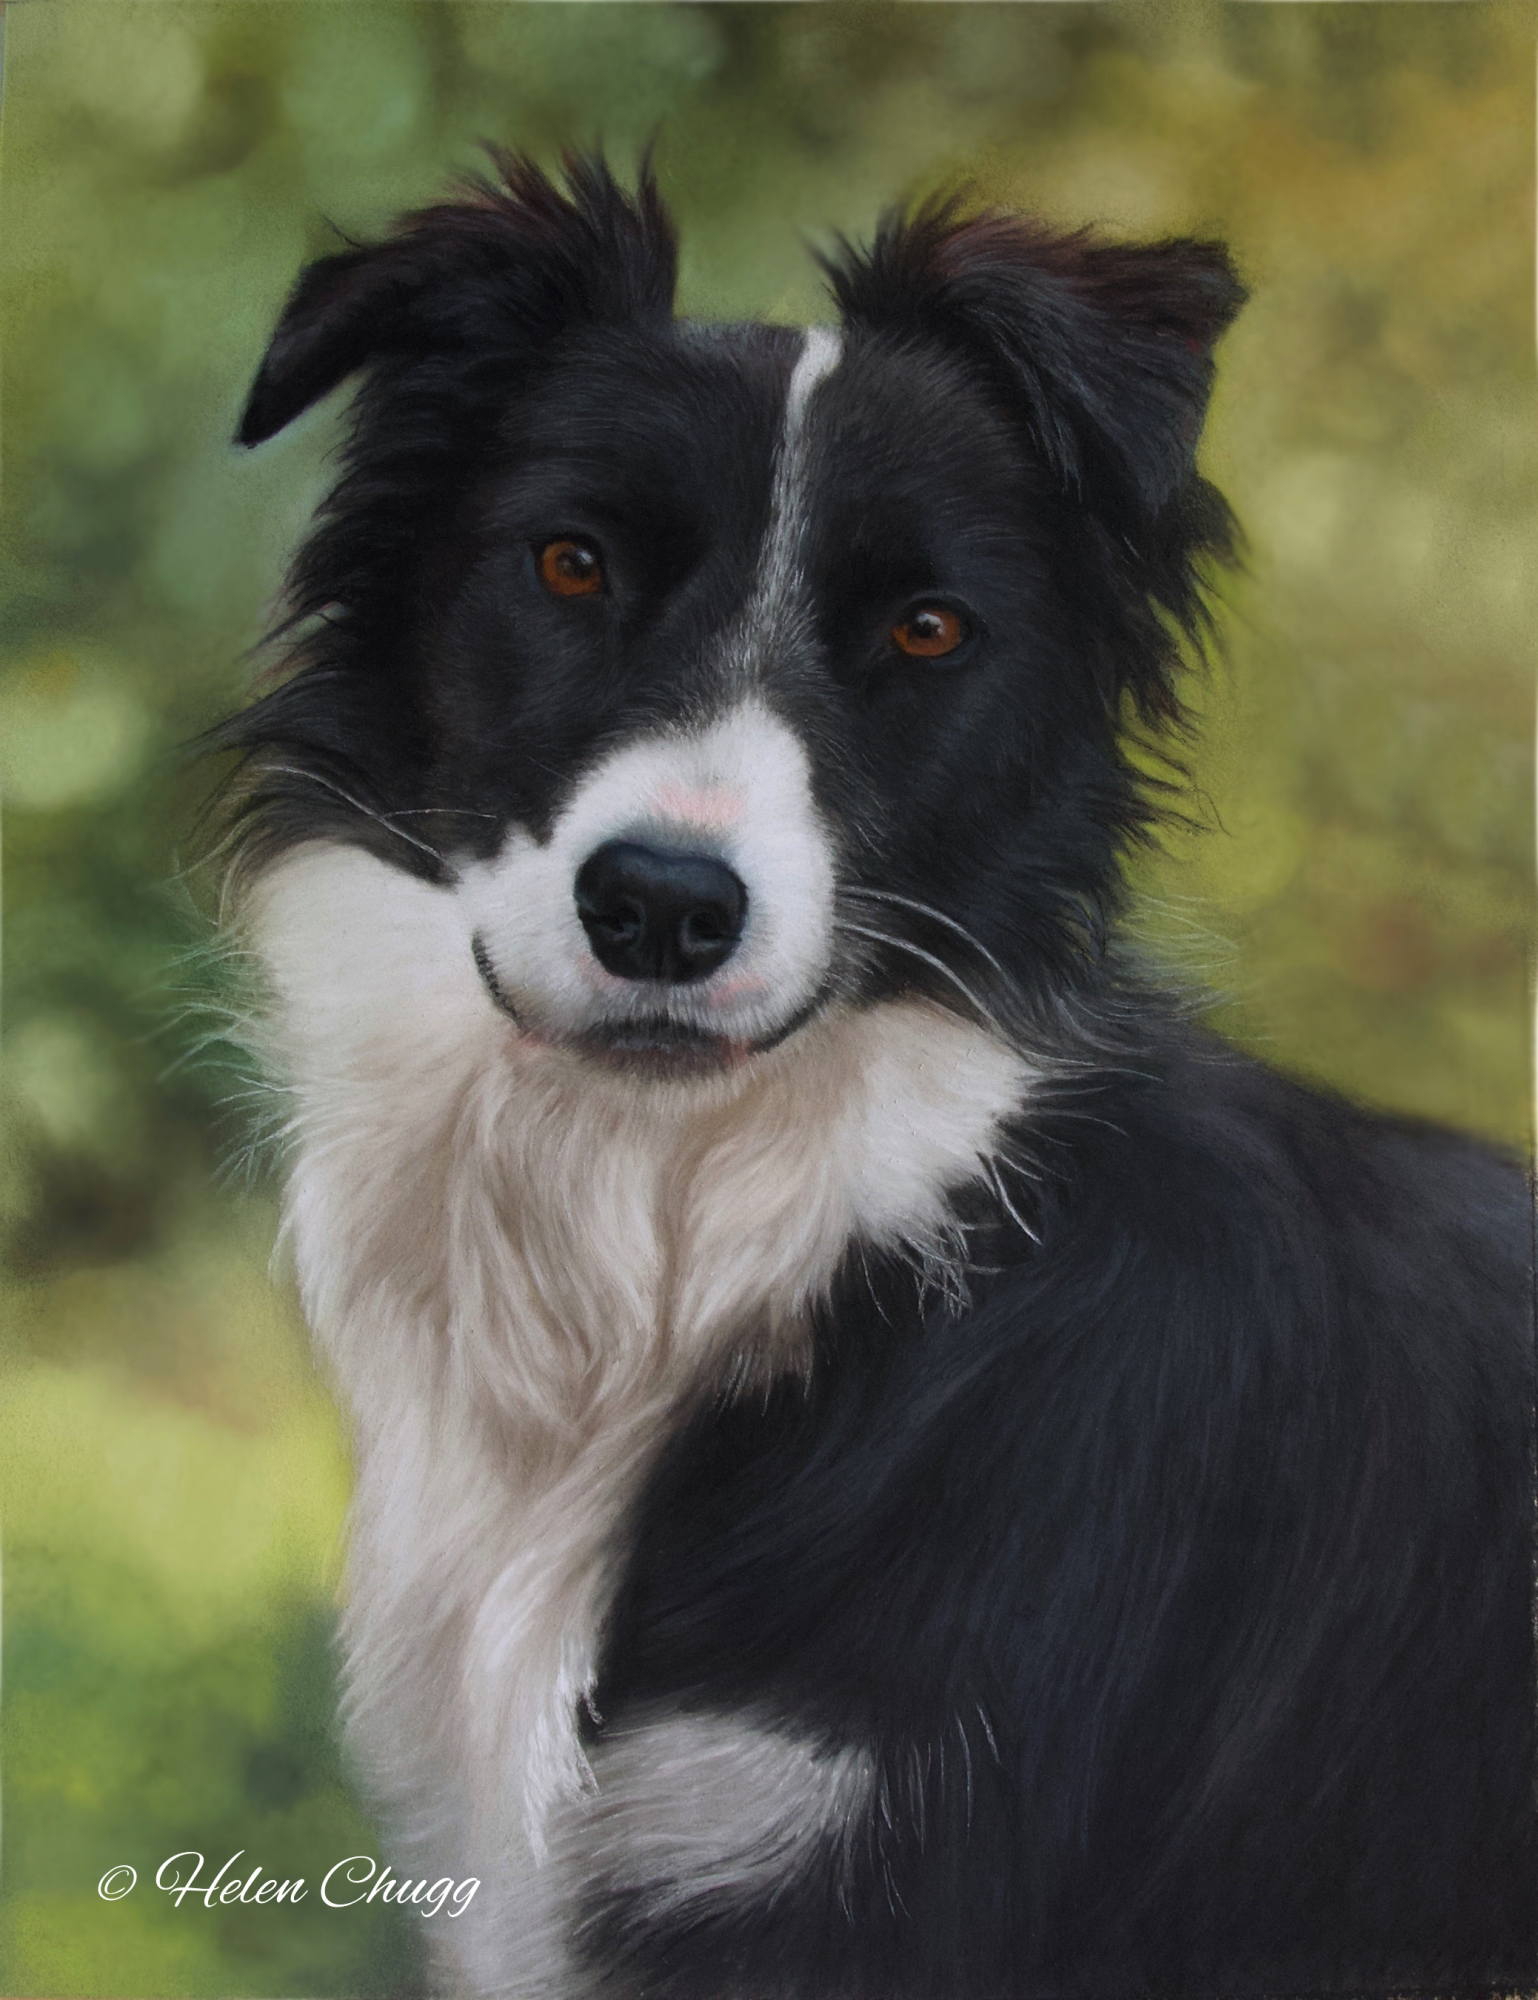 black and white dog against a green background